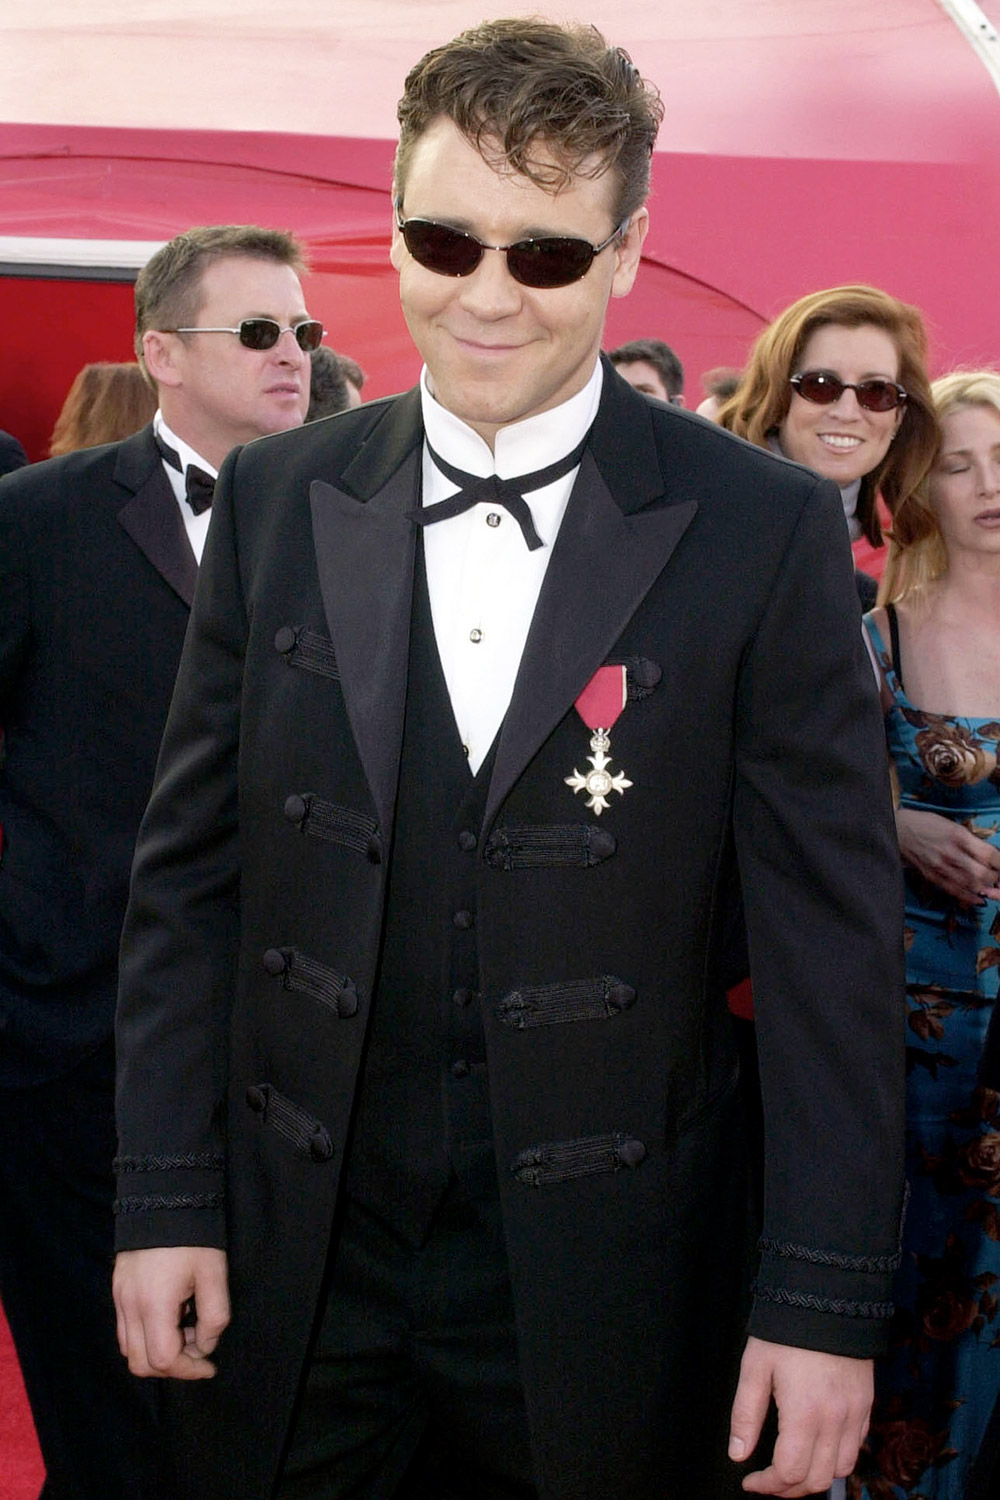 Russell Crowe arrives at the 73rd Annual Academy Awards